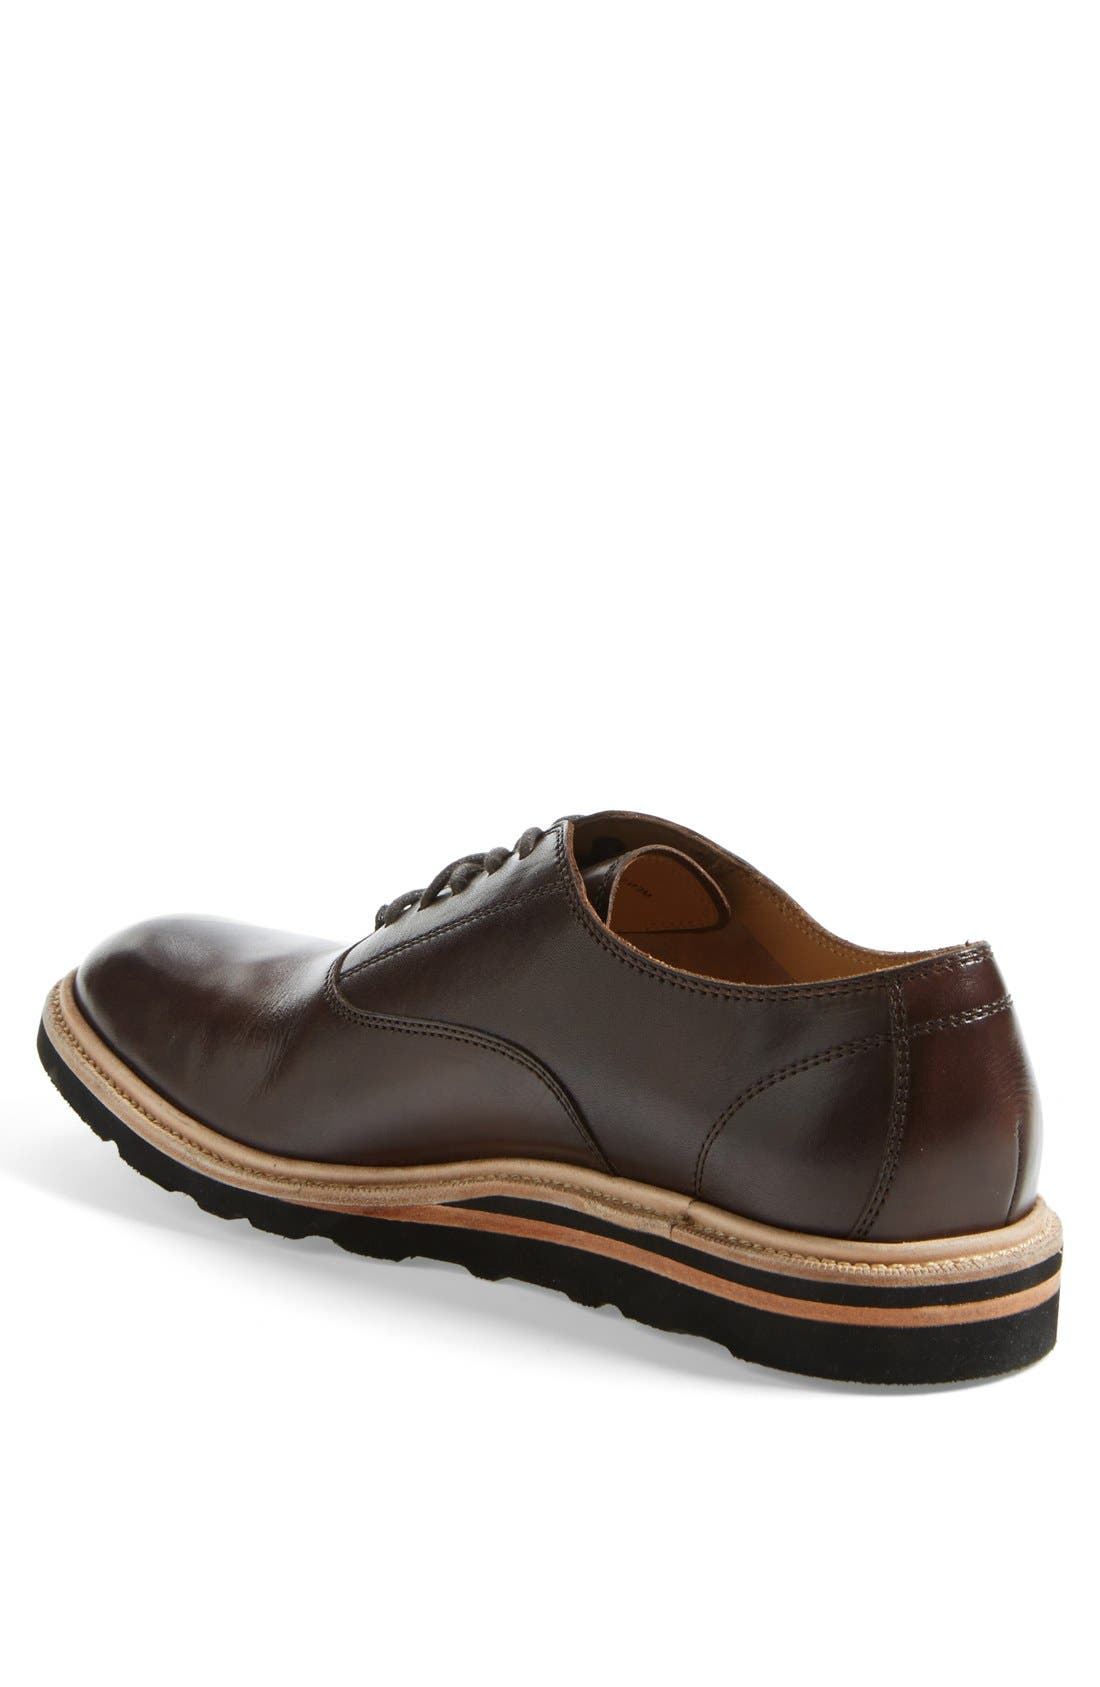 Alternate Image 2  - Cole Haan 'Christy' Wedge Sole Oxford (Men)